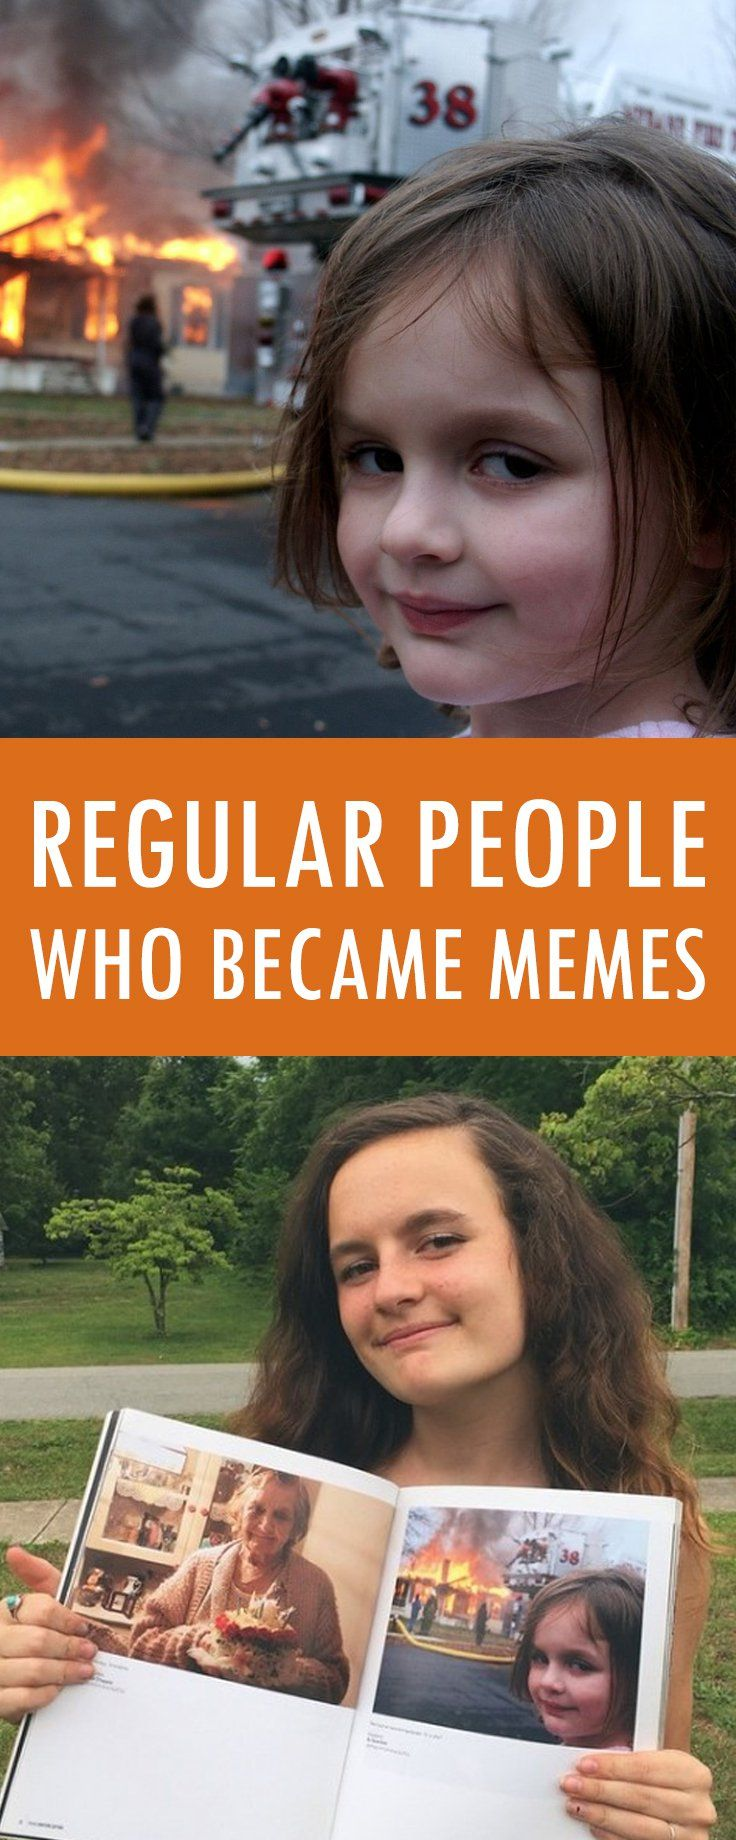 Check out the lives of people behind the memes you see on the net. Would you consider being one of them?